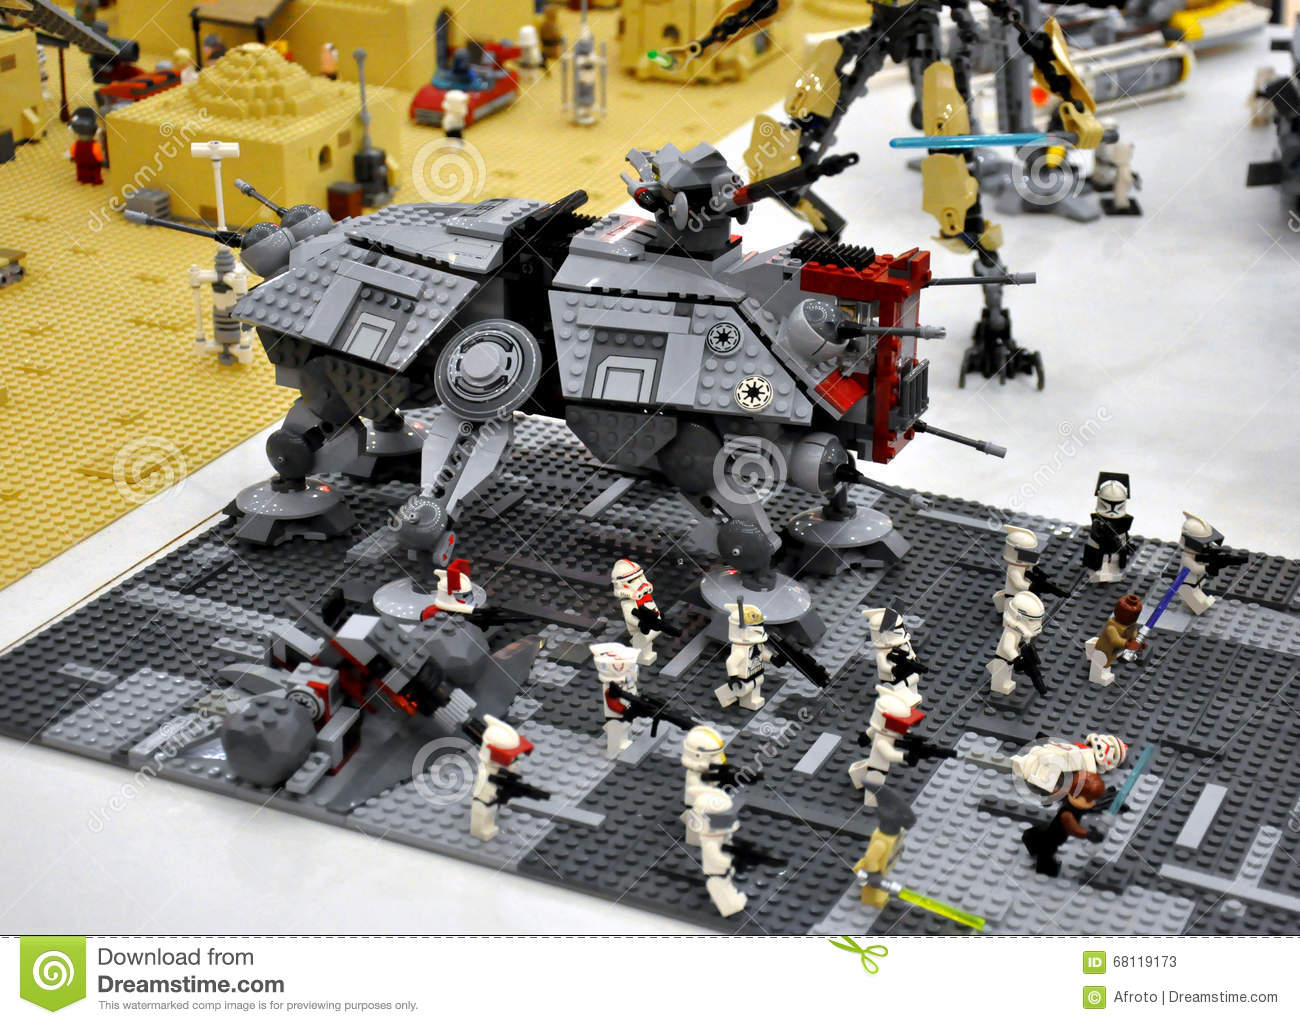 how to get to lego city in lego star wars